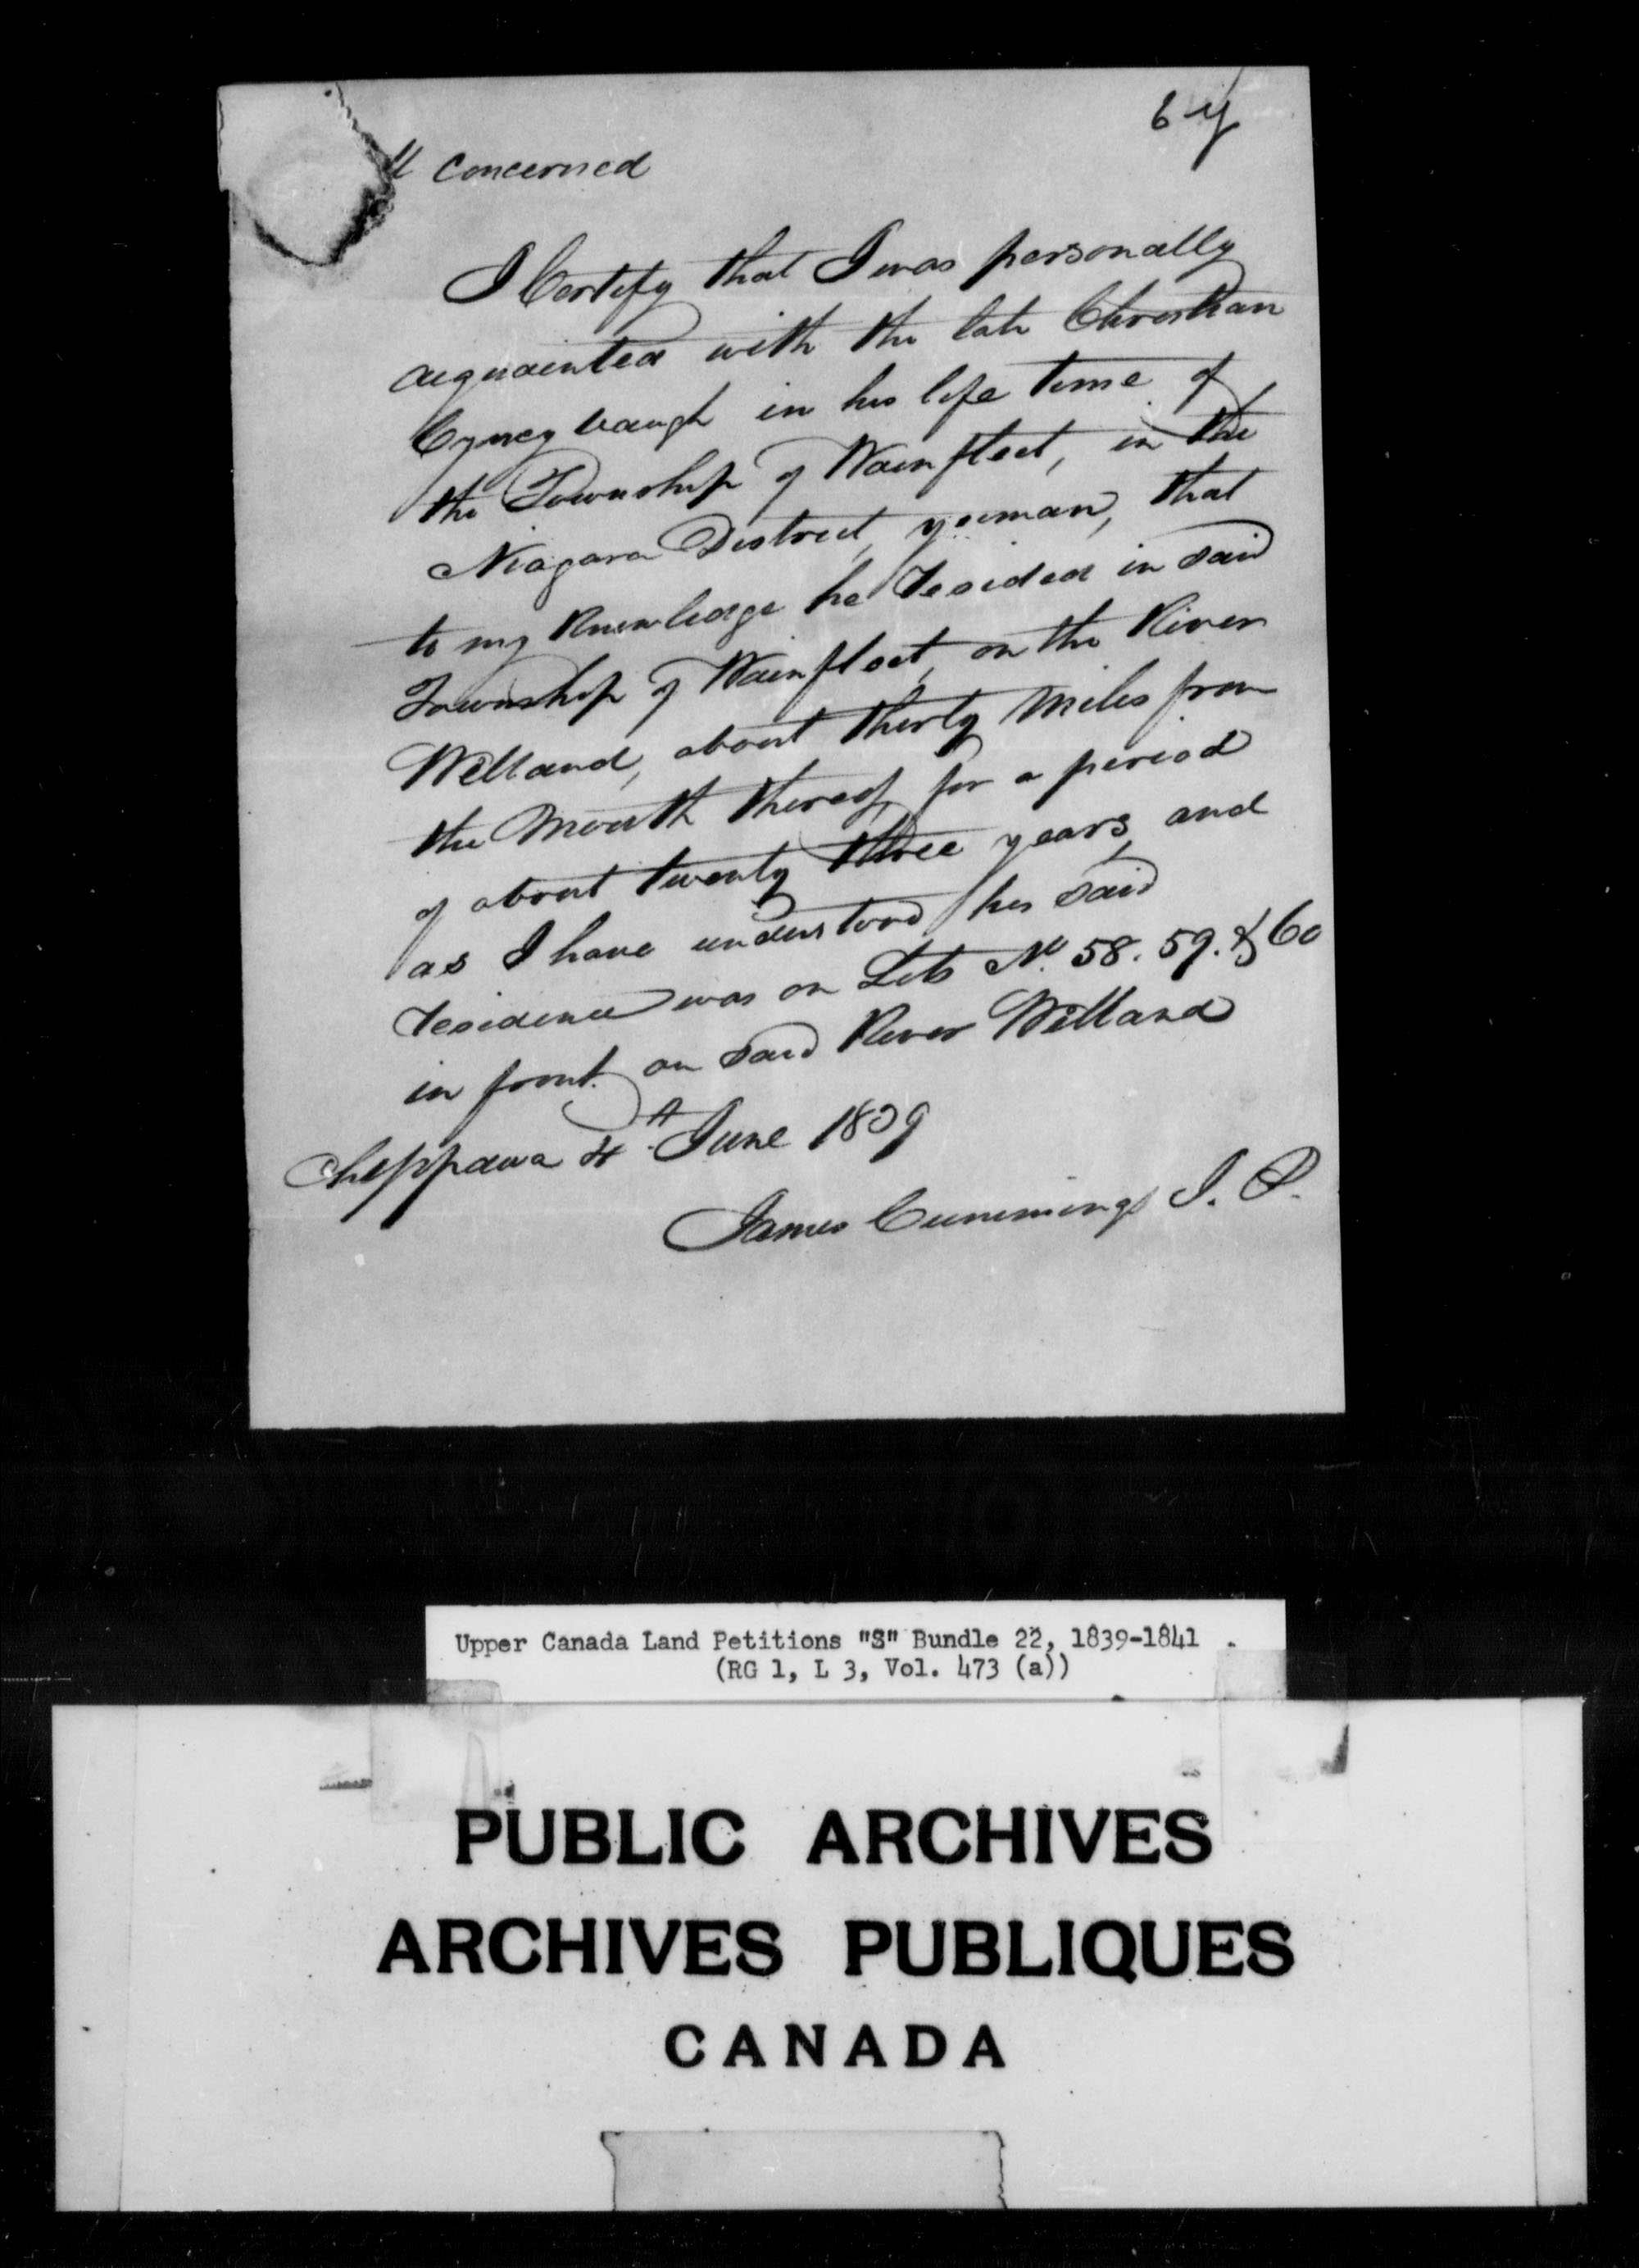 Title: Upper Canada Land Petitions (1763-1865) - Mikan Number: 205131 - Microform: c-2820